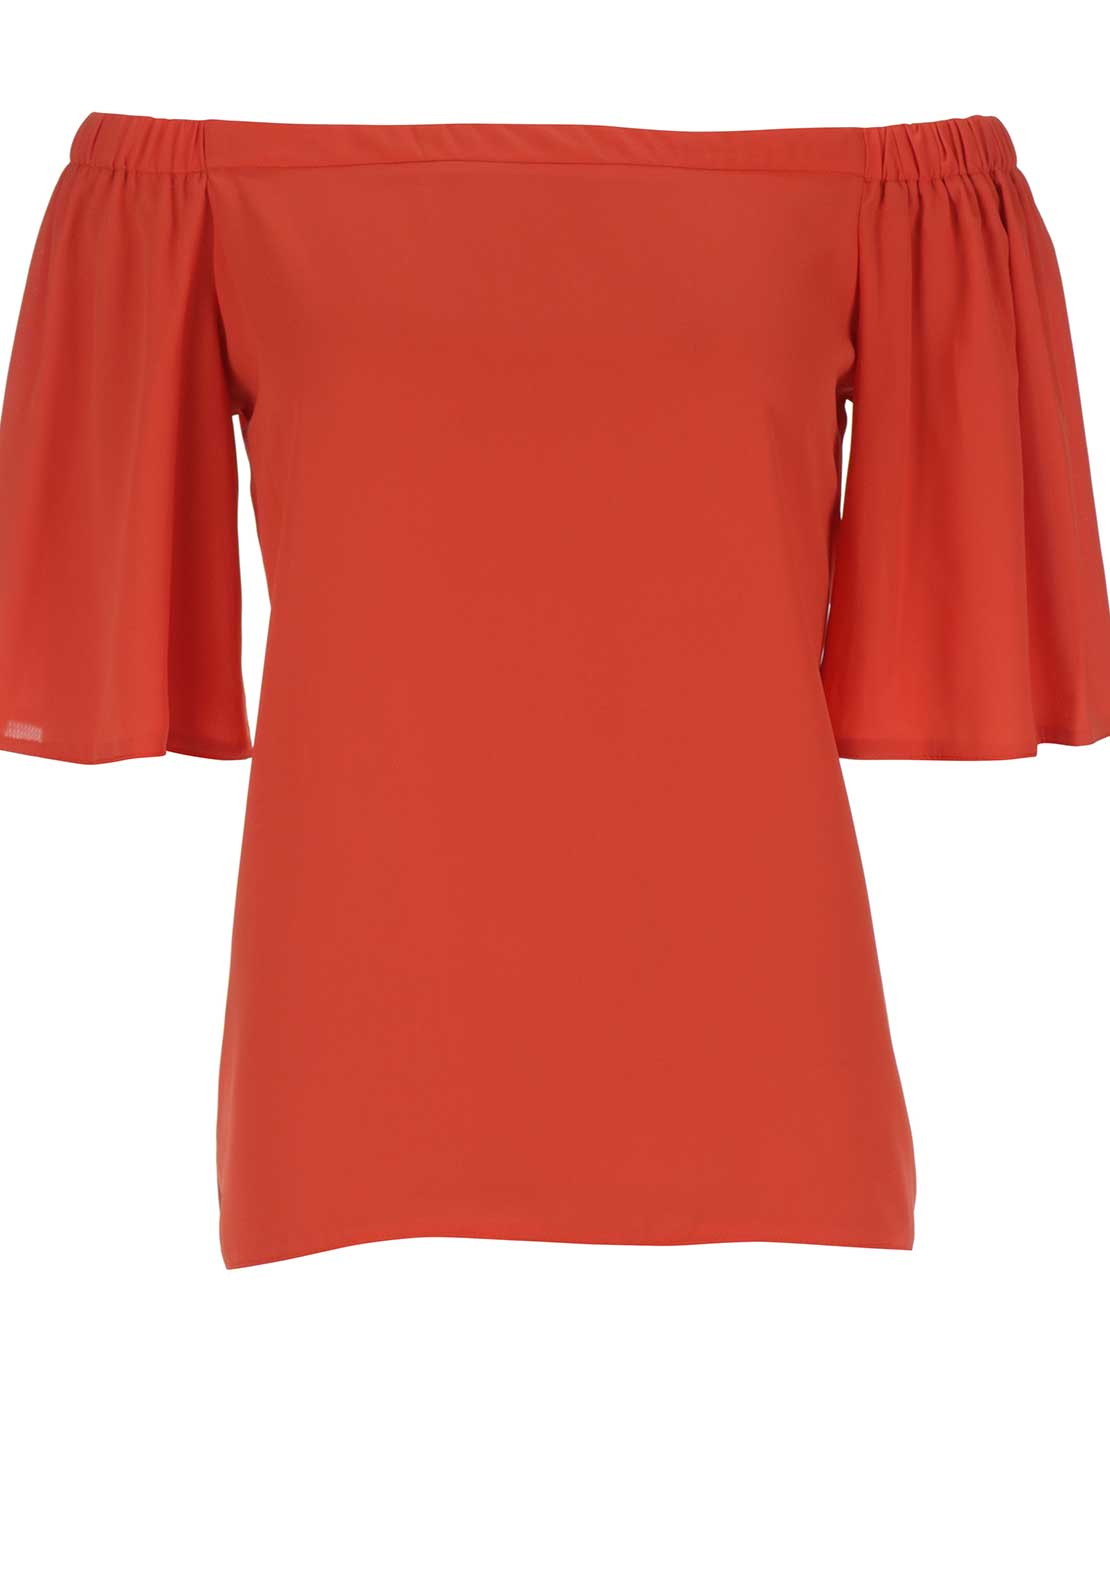 Boutique Off The Shoulder Top, Orange